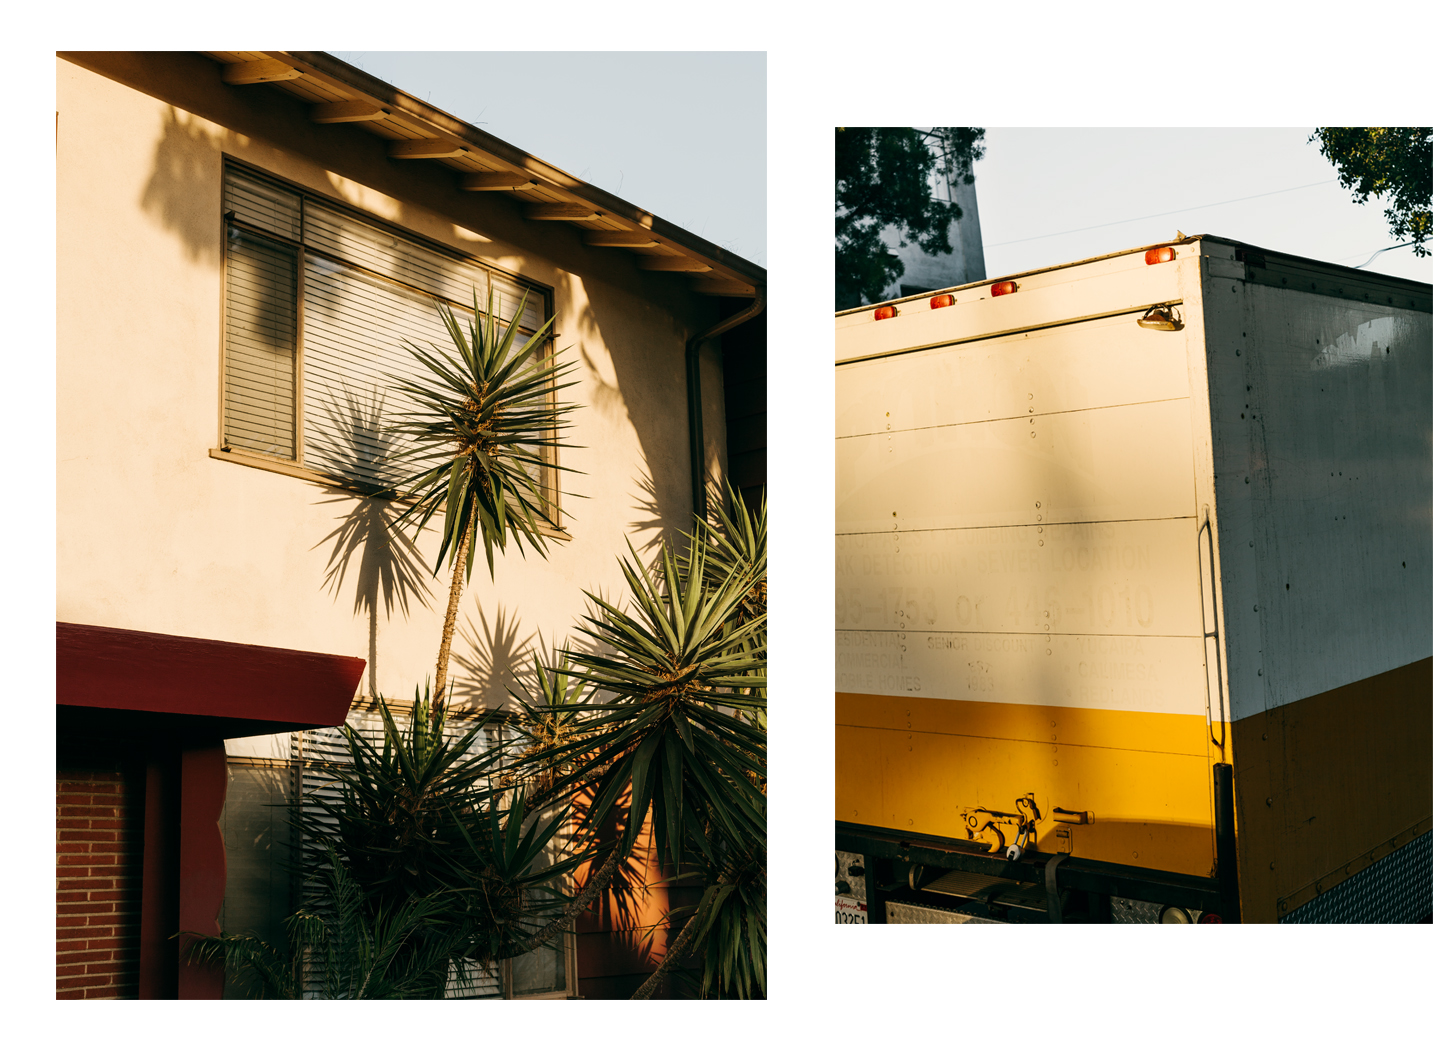 Los Feliz neighborhood in Los Angeles.  Brad Torchia is an LA-based editorial and commercial photographer.